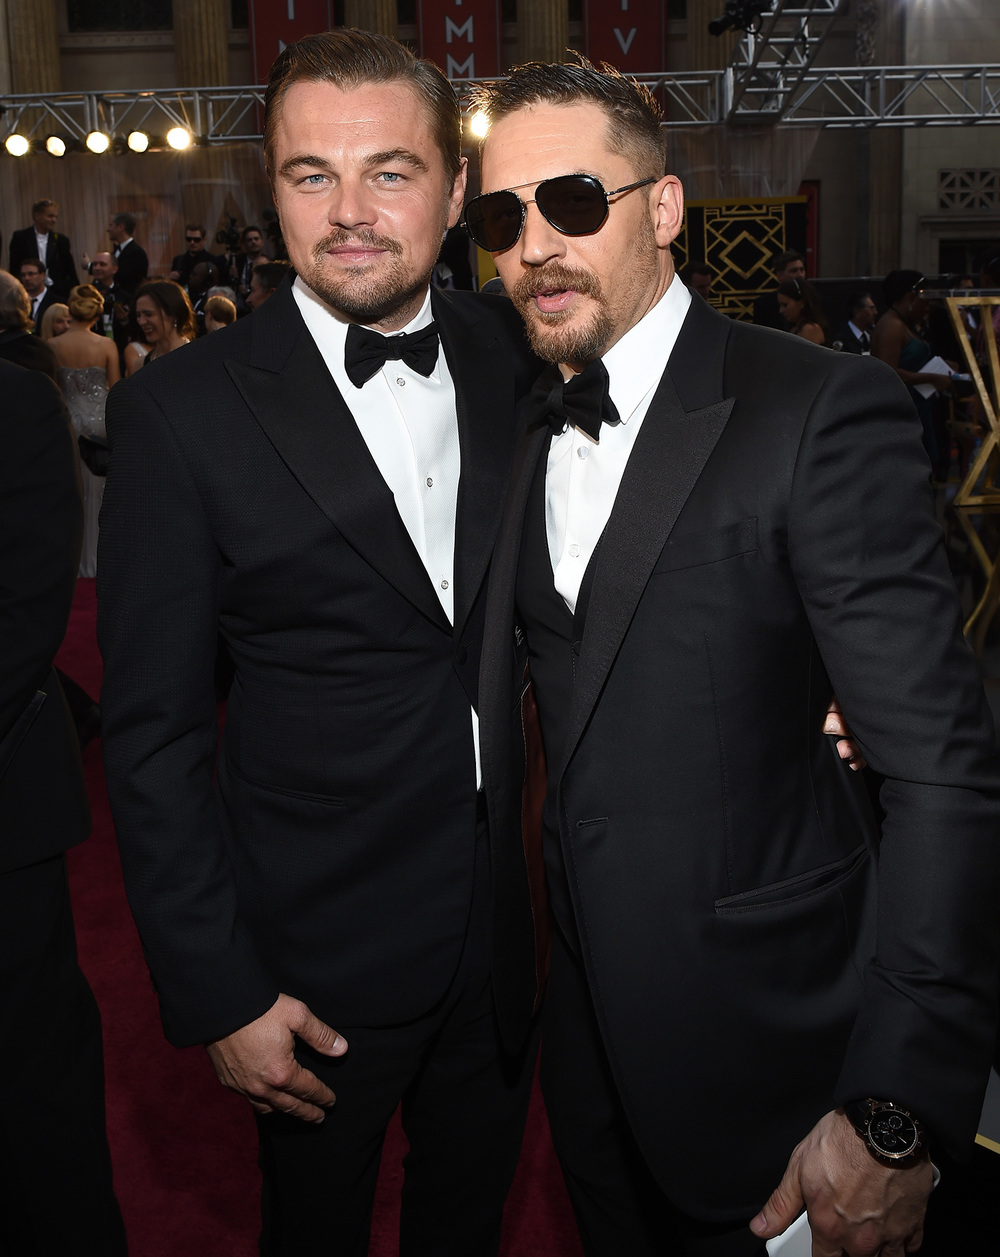 Tom Hardy, Best Supporting Actor  Nominee at the Oscars  wearing Gucci